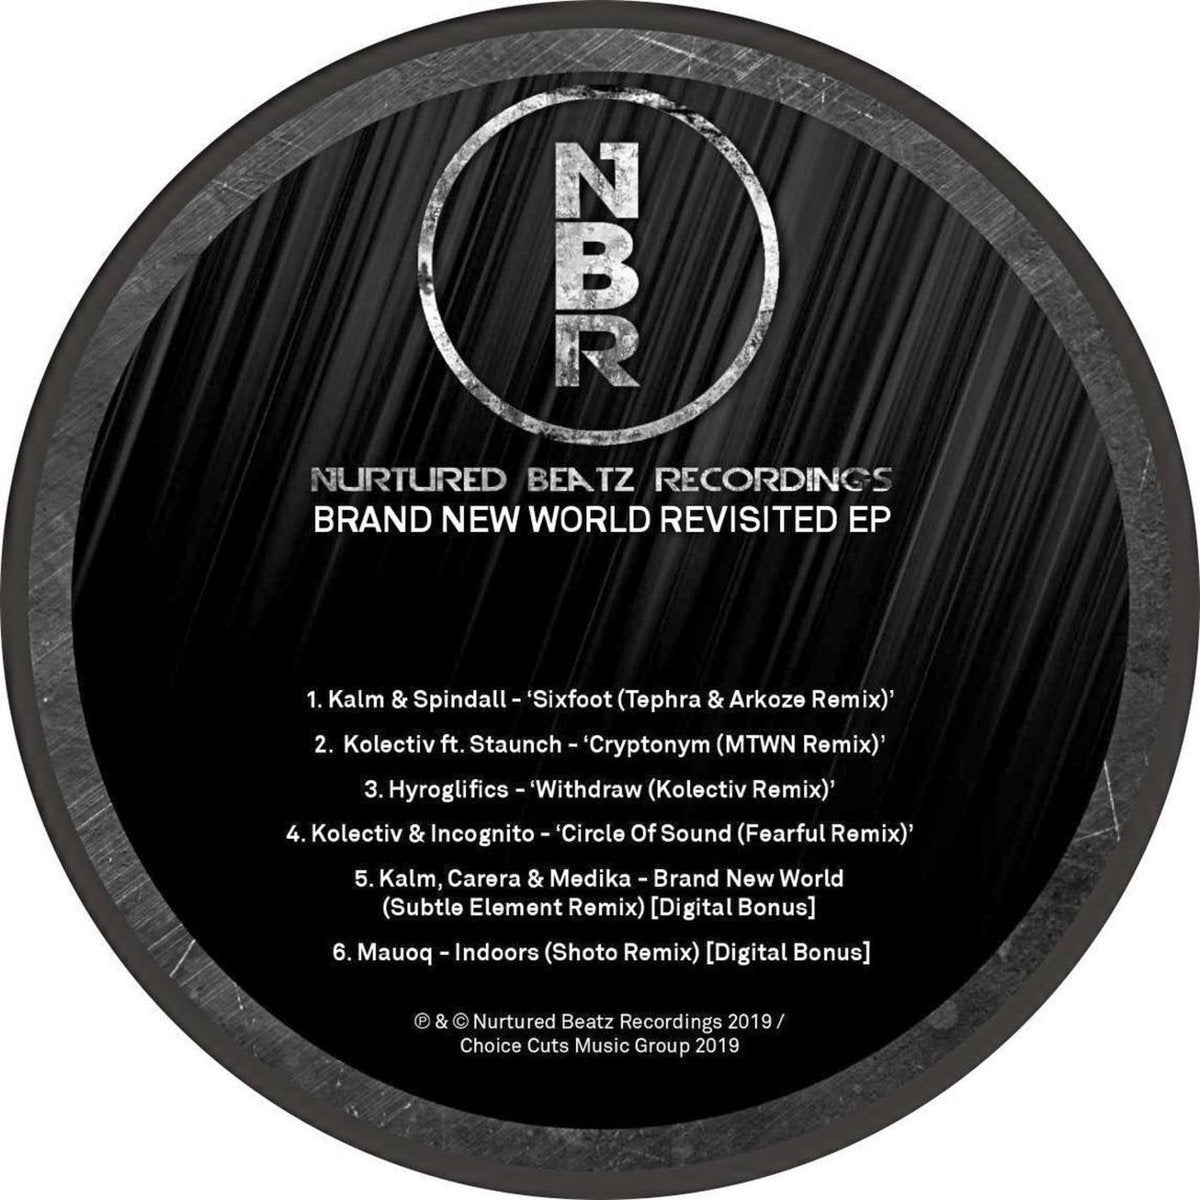 Various 'Brand New World Revisited' EP